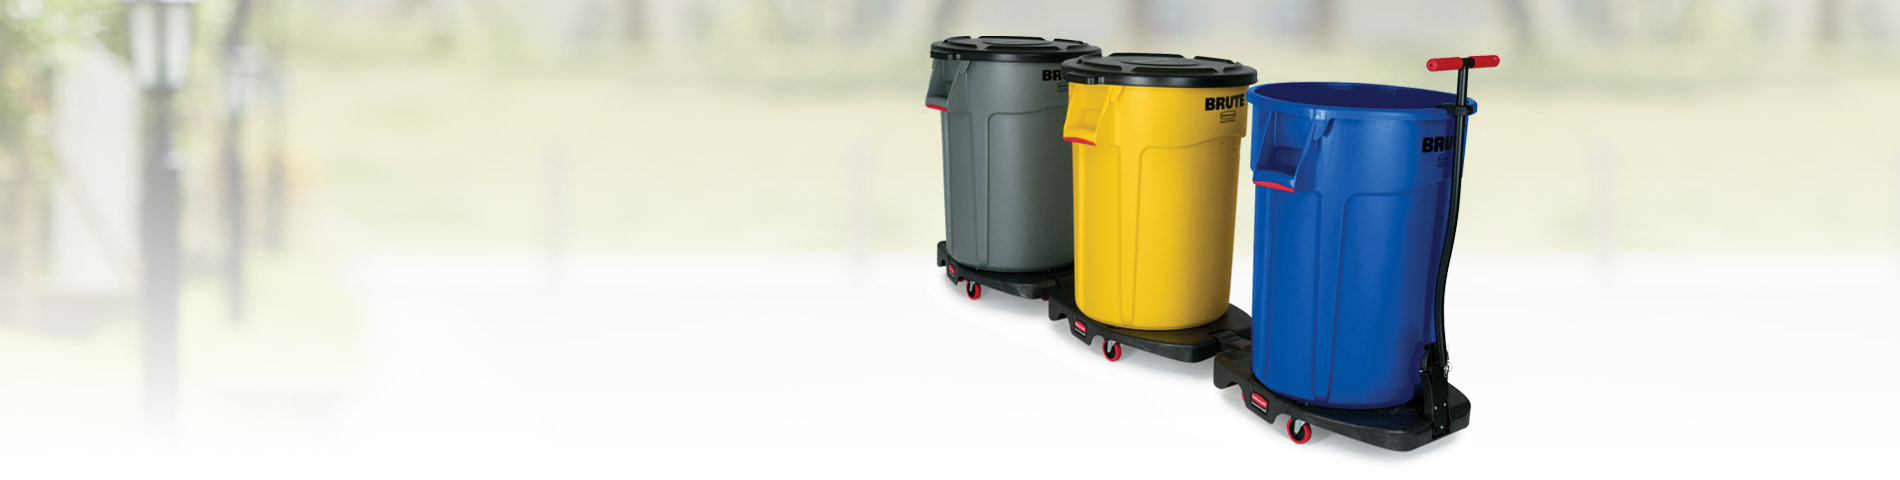 Round Containers RB-2632